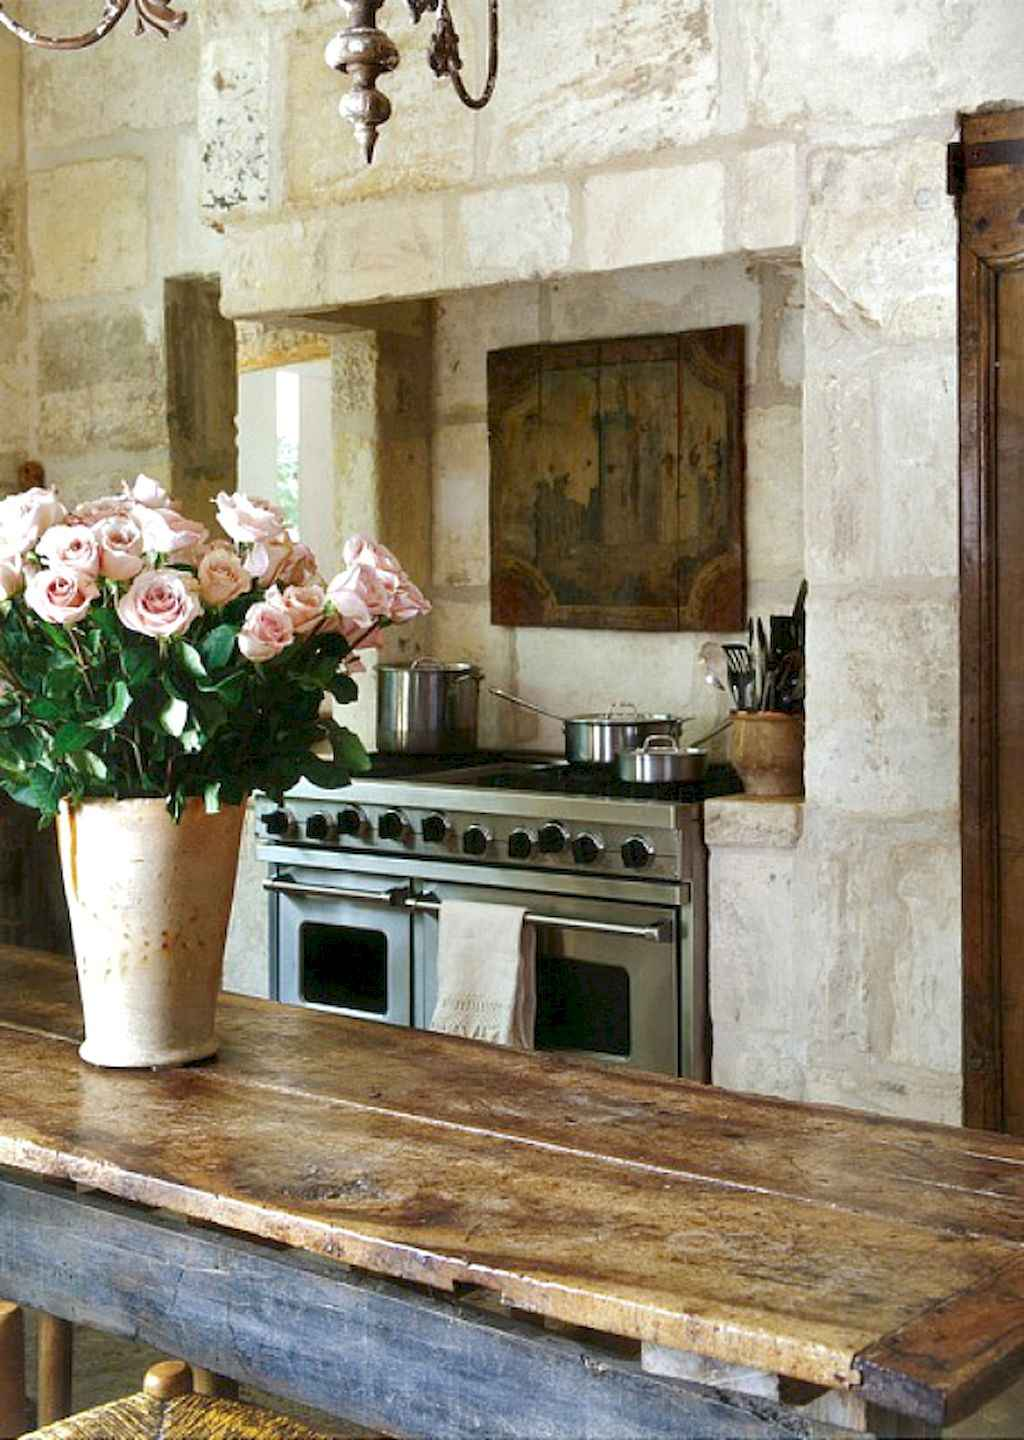 Incredible french country kitchen design ideas (27)